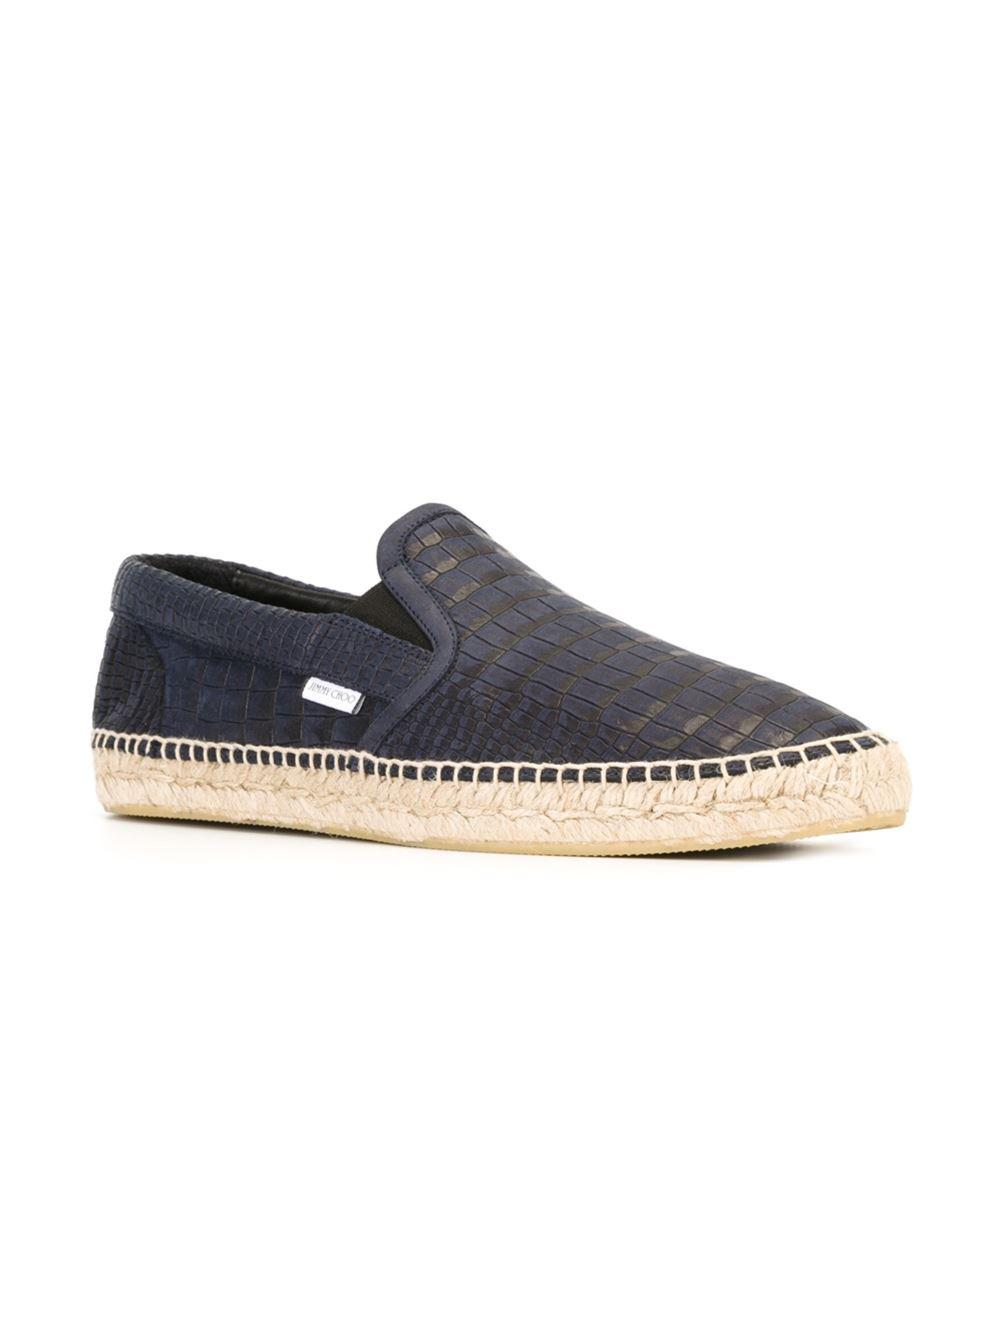 1781ea764e15 Jimmy Choo - Blue Vlad Men s Crocodile-print Espadrille Slip-on Sneaker for  Men. View fullscreen